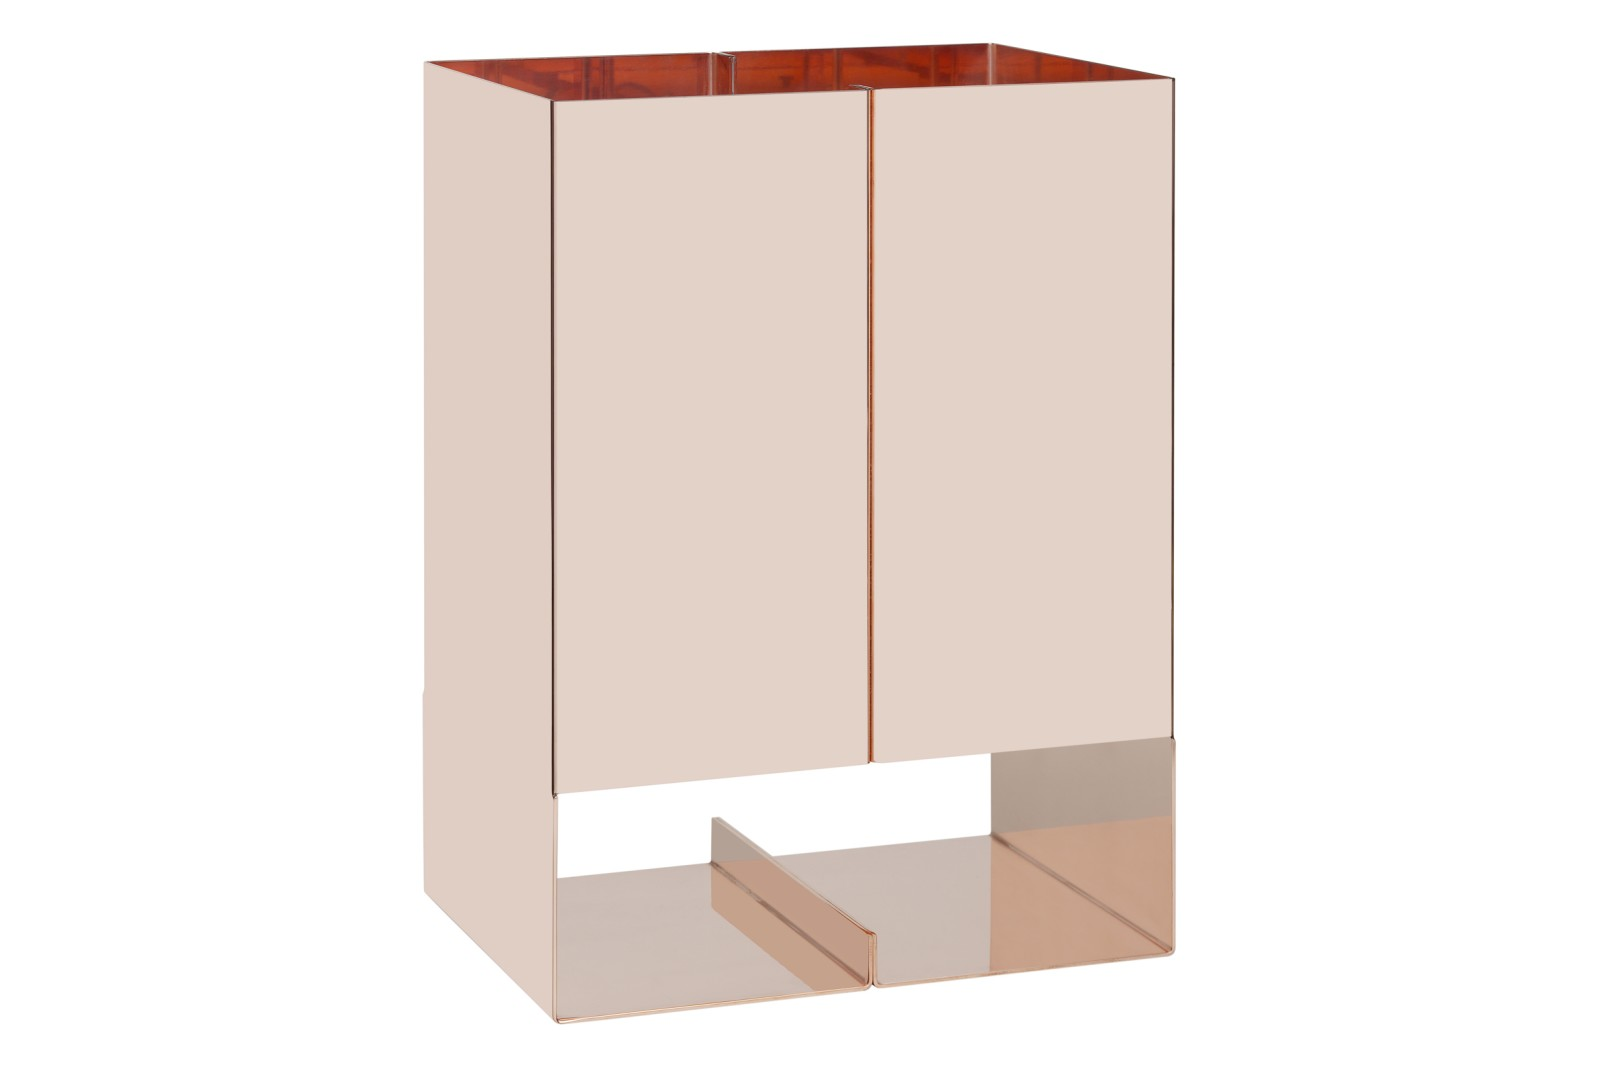 LT02 Seam Two Table Lamp Copper, Large